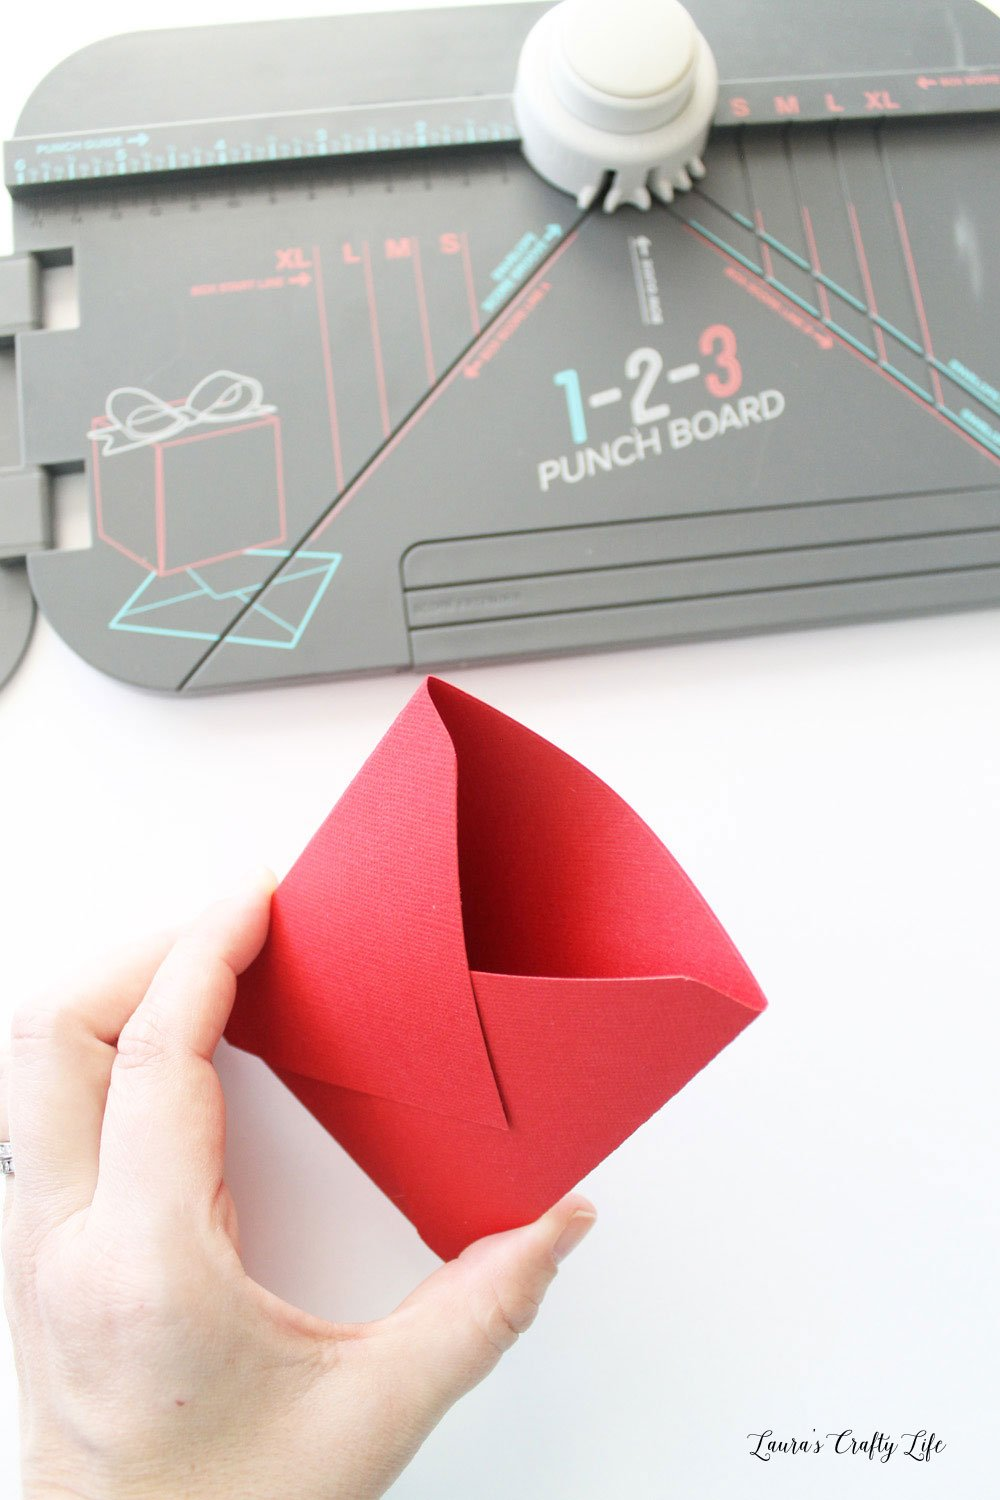 Trim off one flap of the envelope to create a pocket